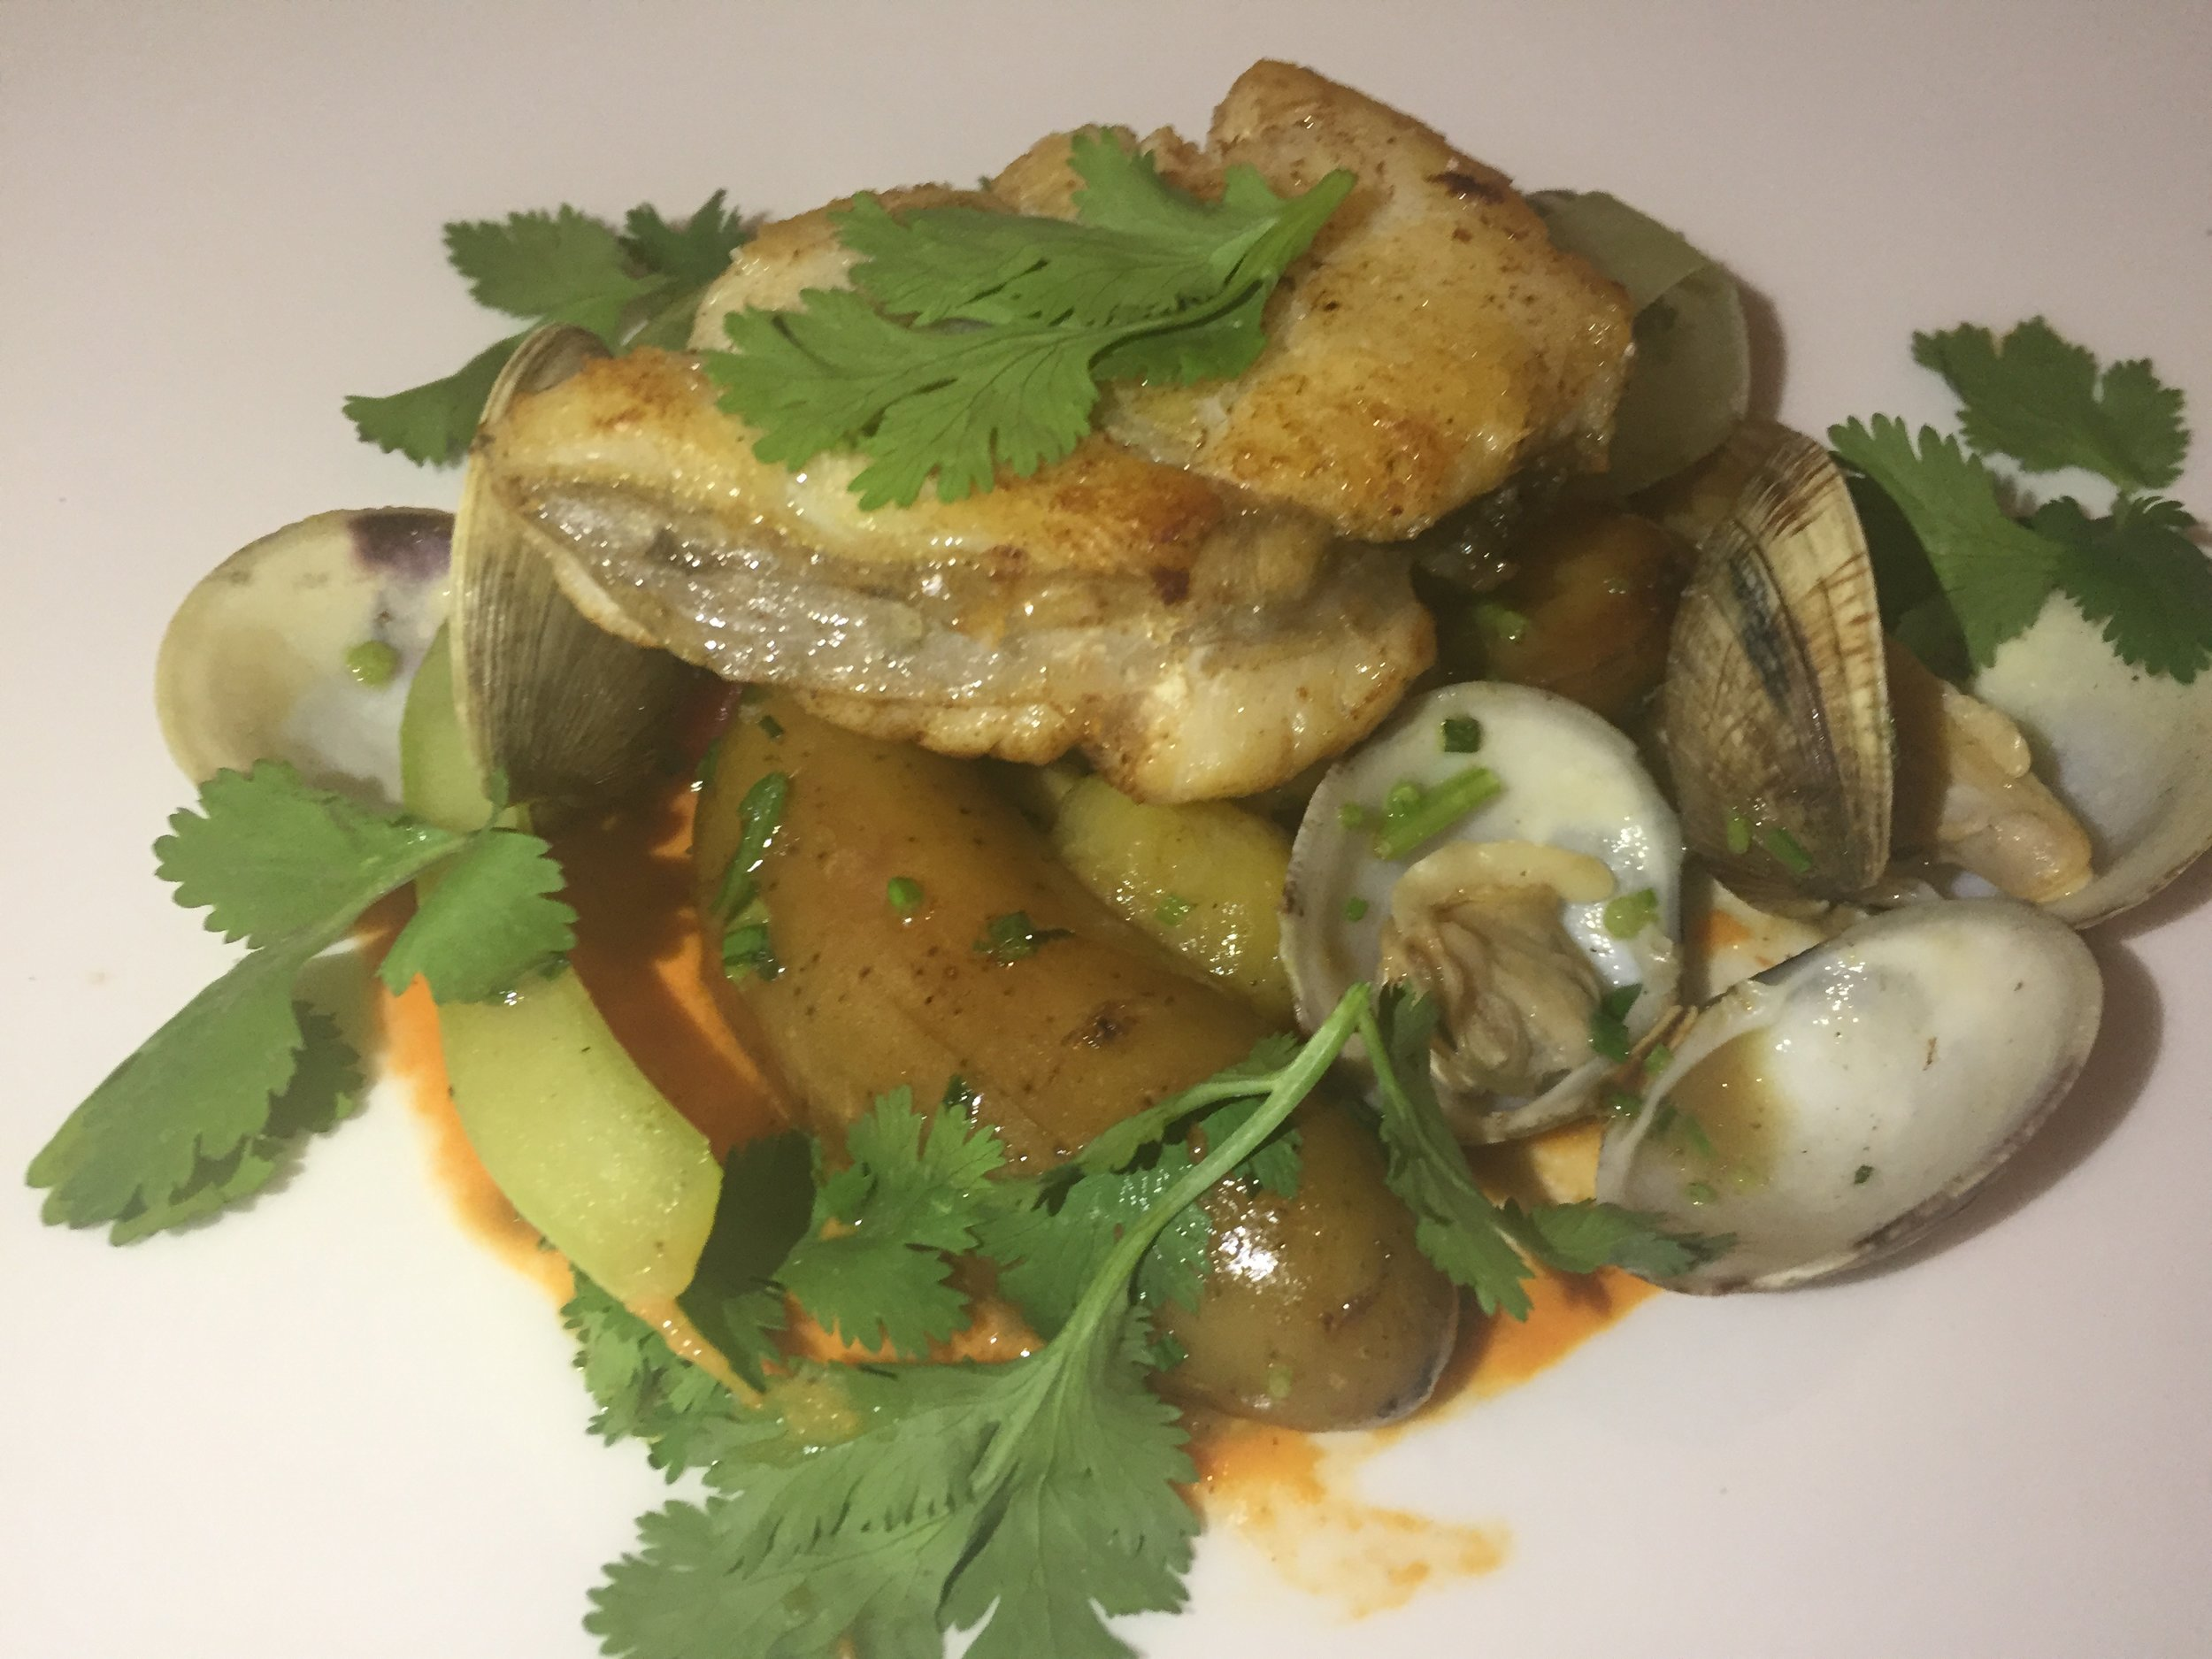 MONKFISH: 'Alentejana' style roasted monkfish, red pepper glazed monkfish, clam in a white wine, tomato and dark chicken stock, and coriander.